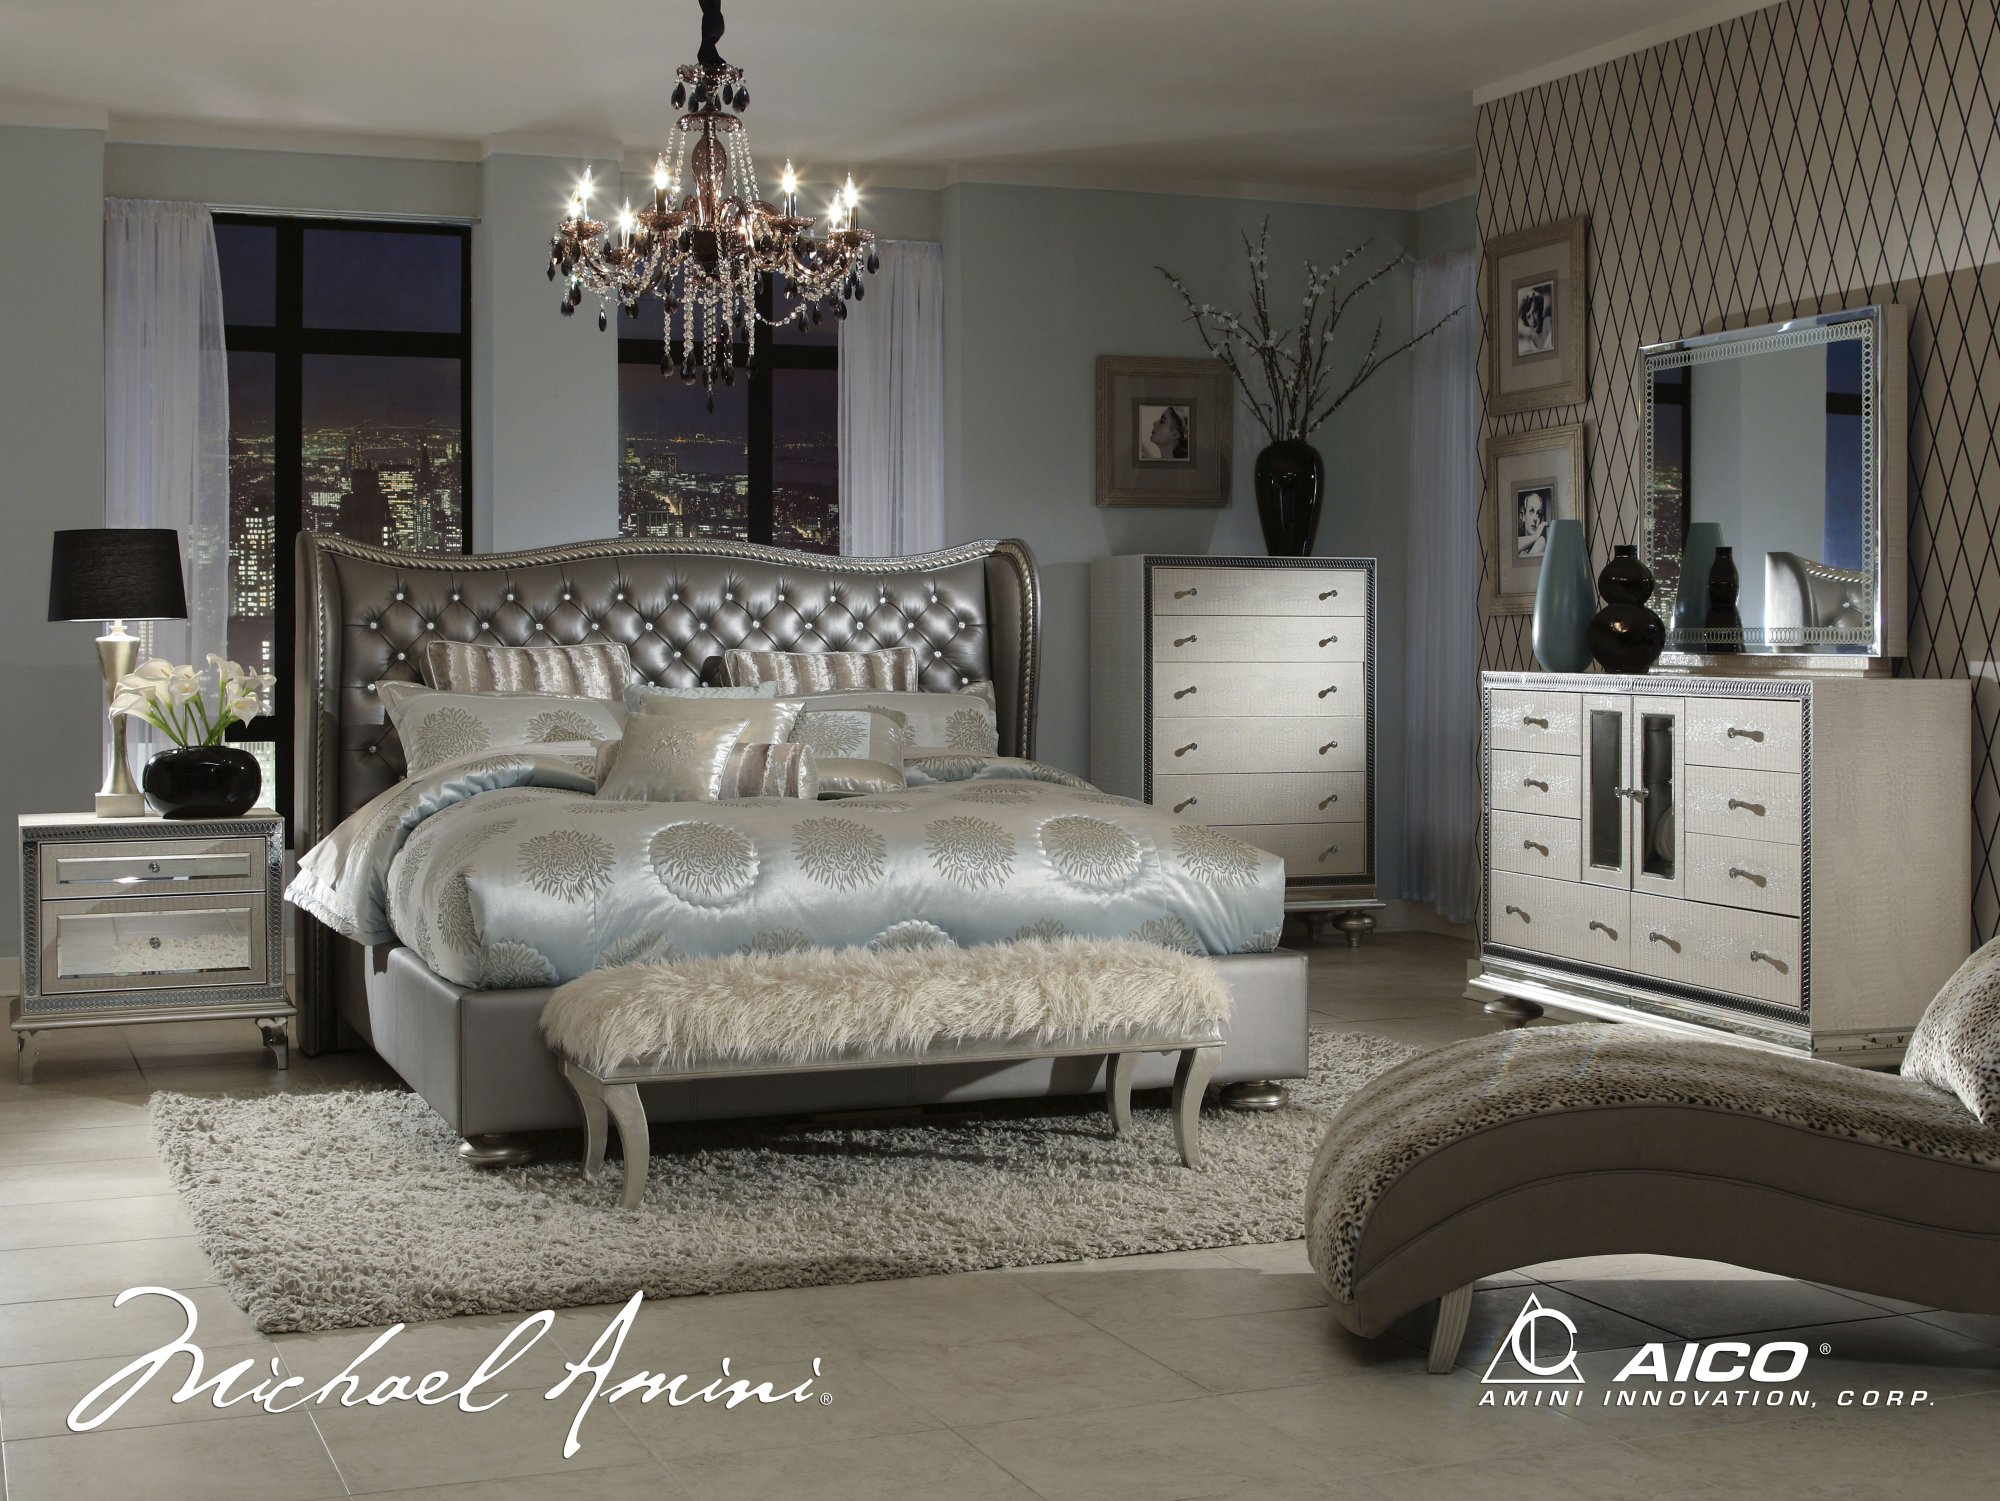 Bedroom Excellent Bedroom Furniture Design With Cool Aico Bedroom with regard to 12 Awesome Tricks of How to Craft Living Room And Bedroom Sets